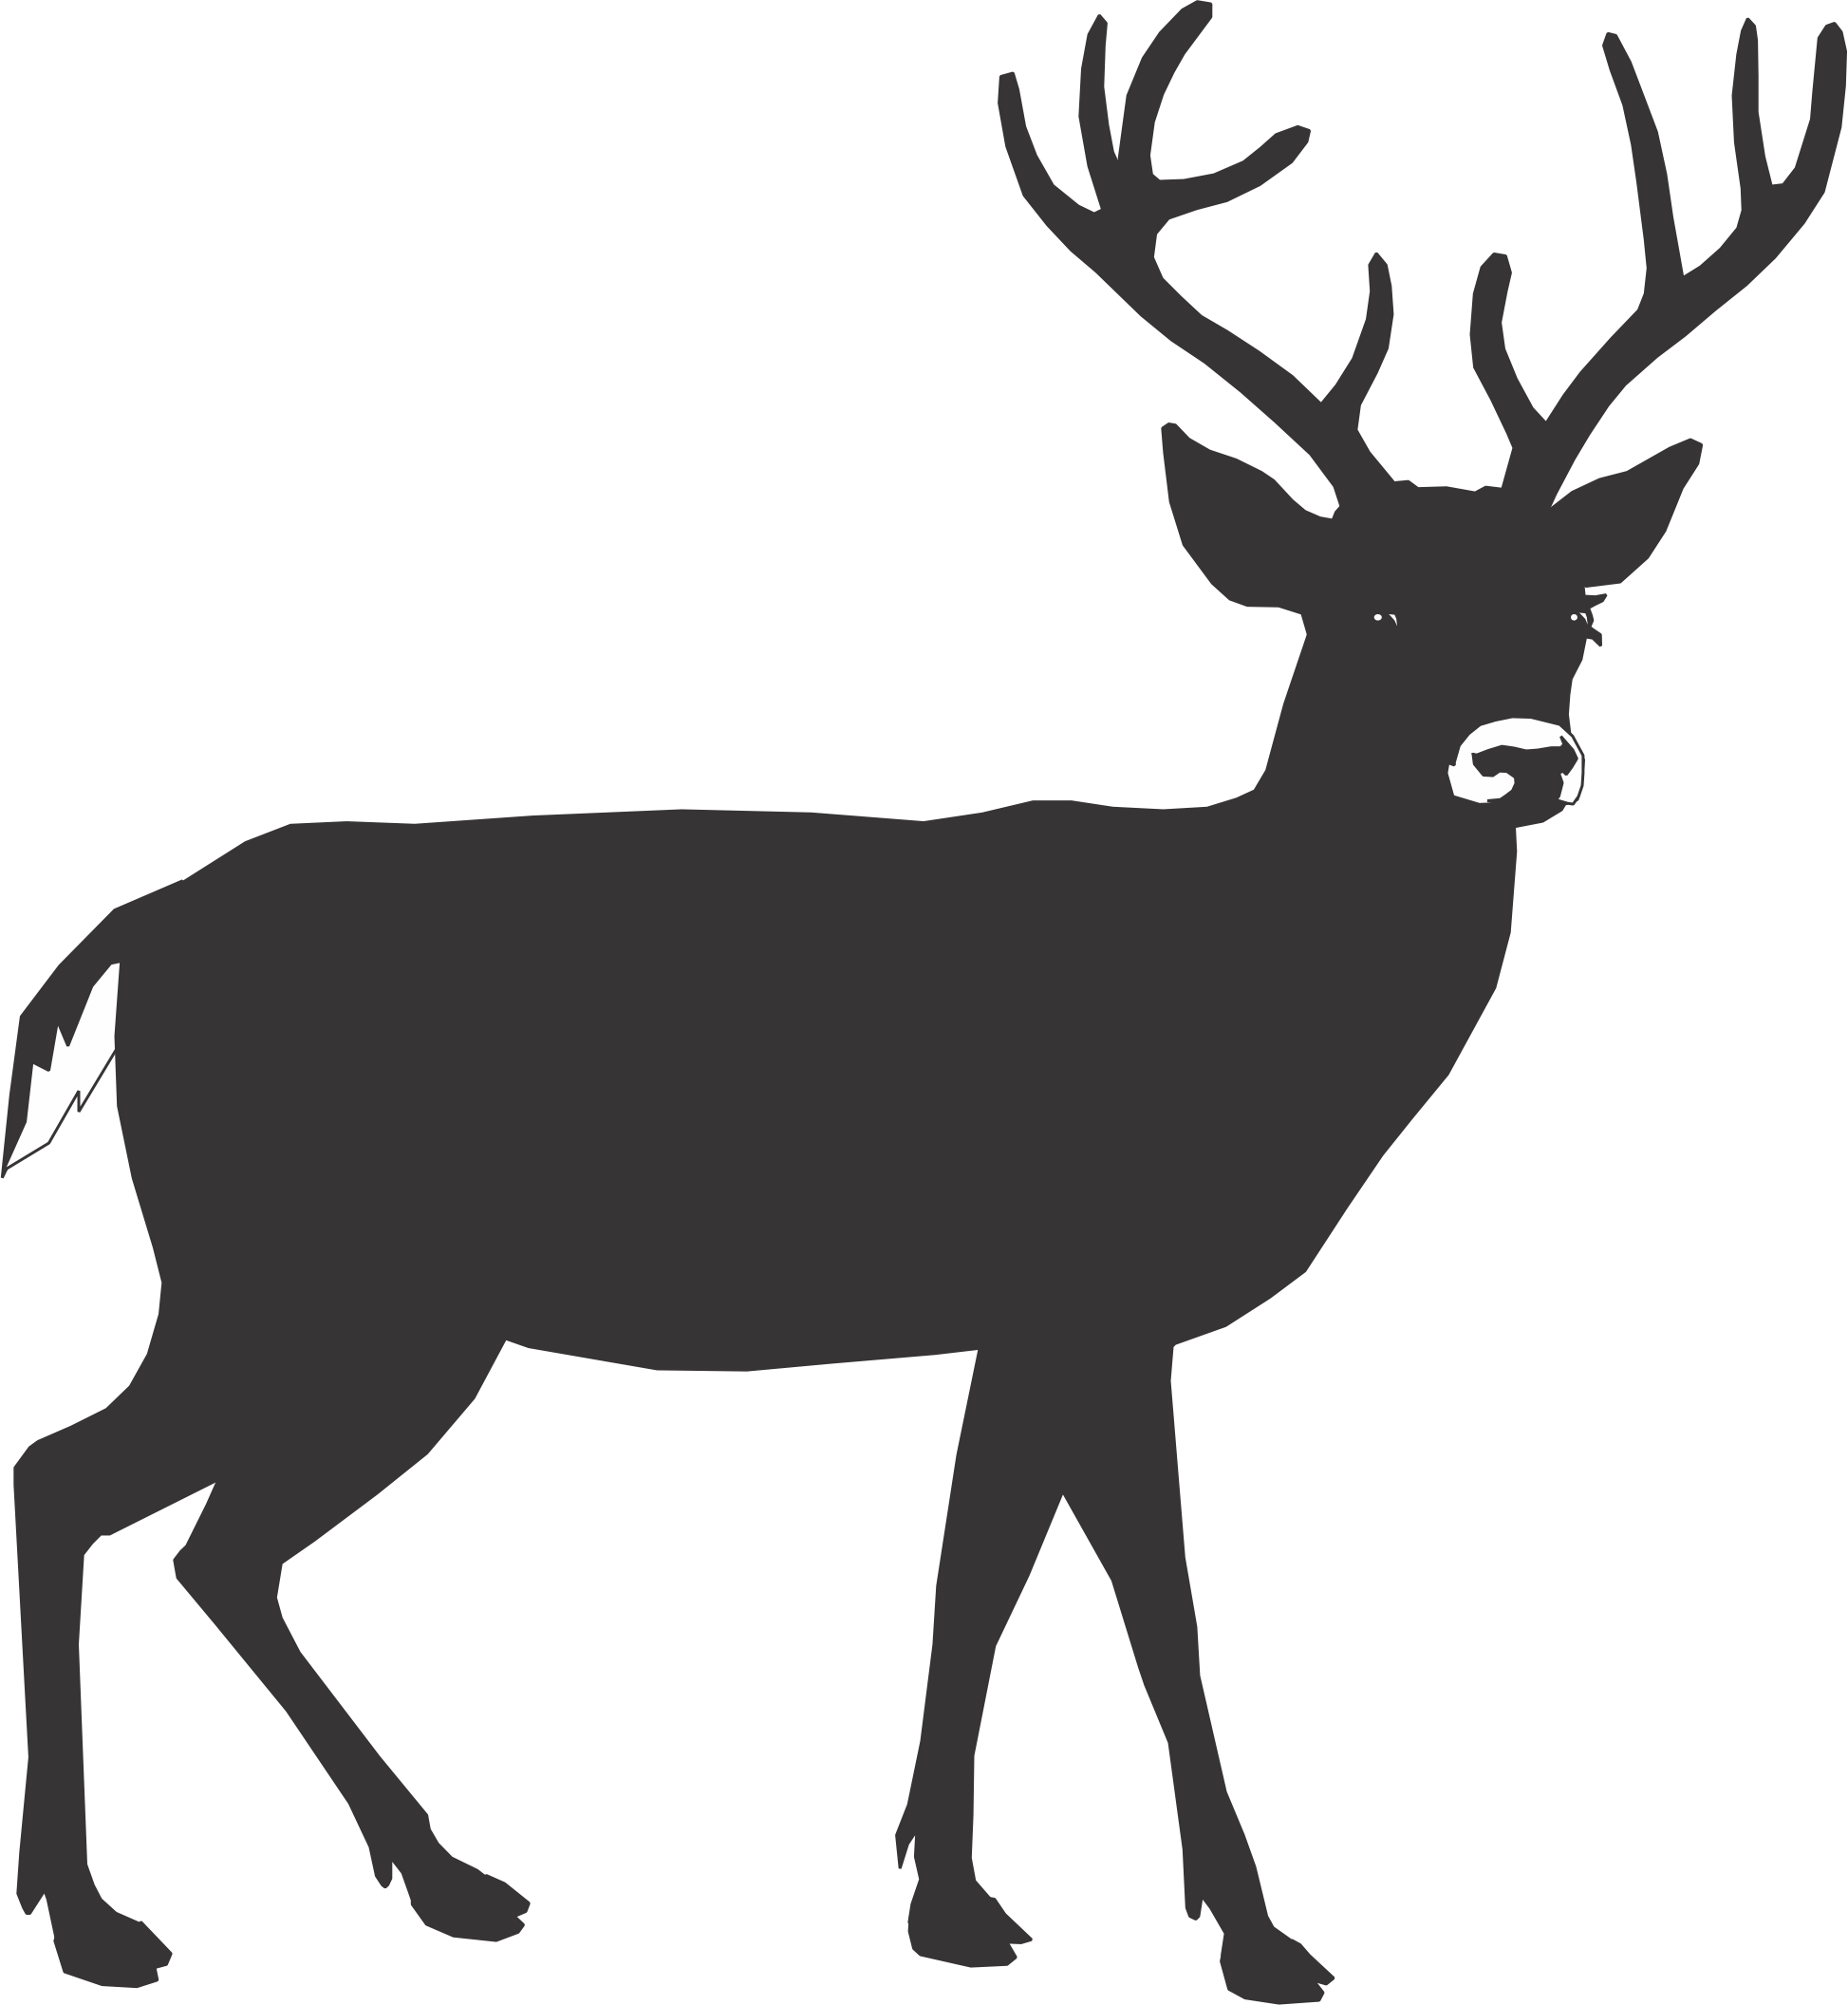 Hunting clipart caribou. Cartoon pictures of deer